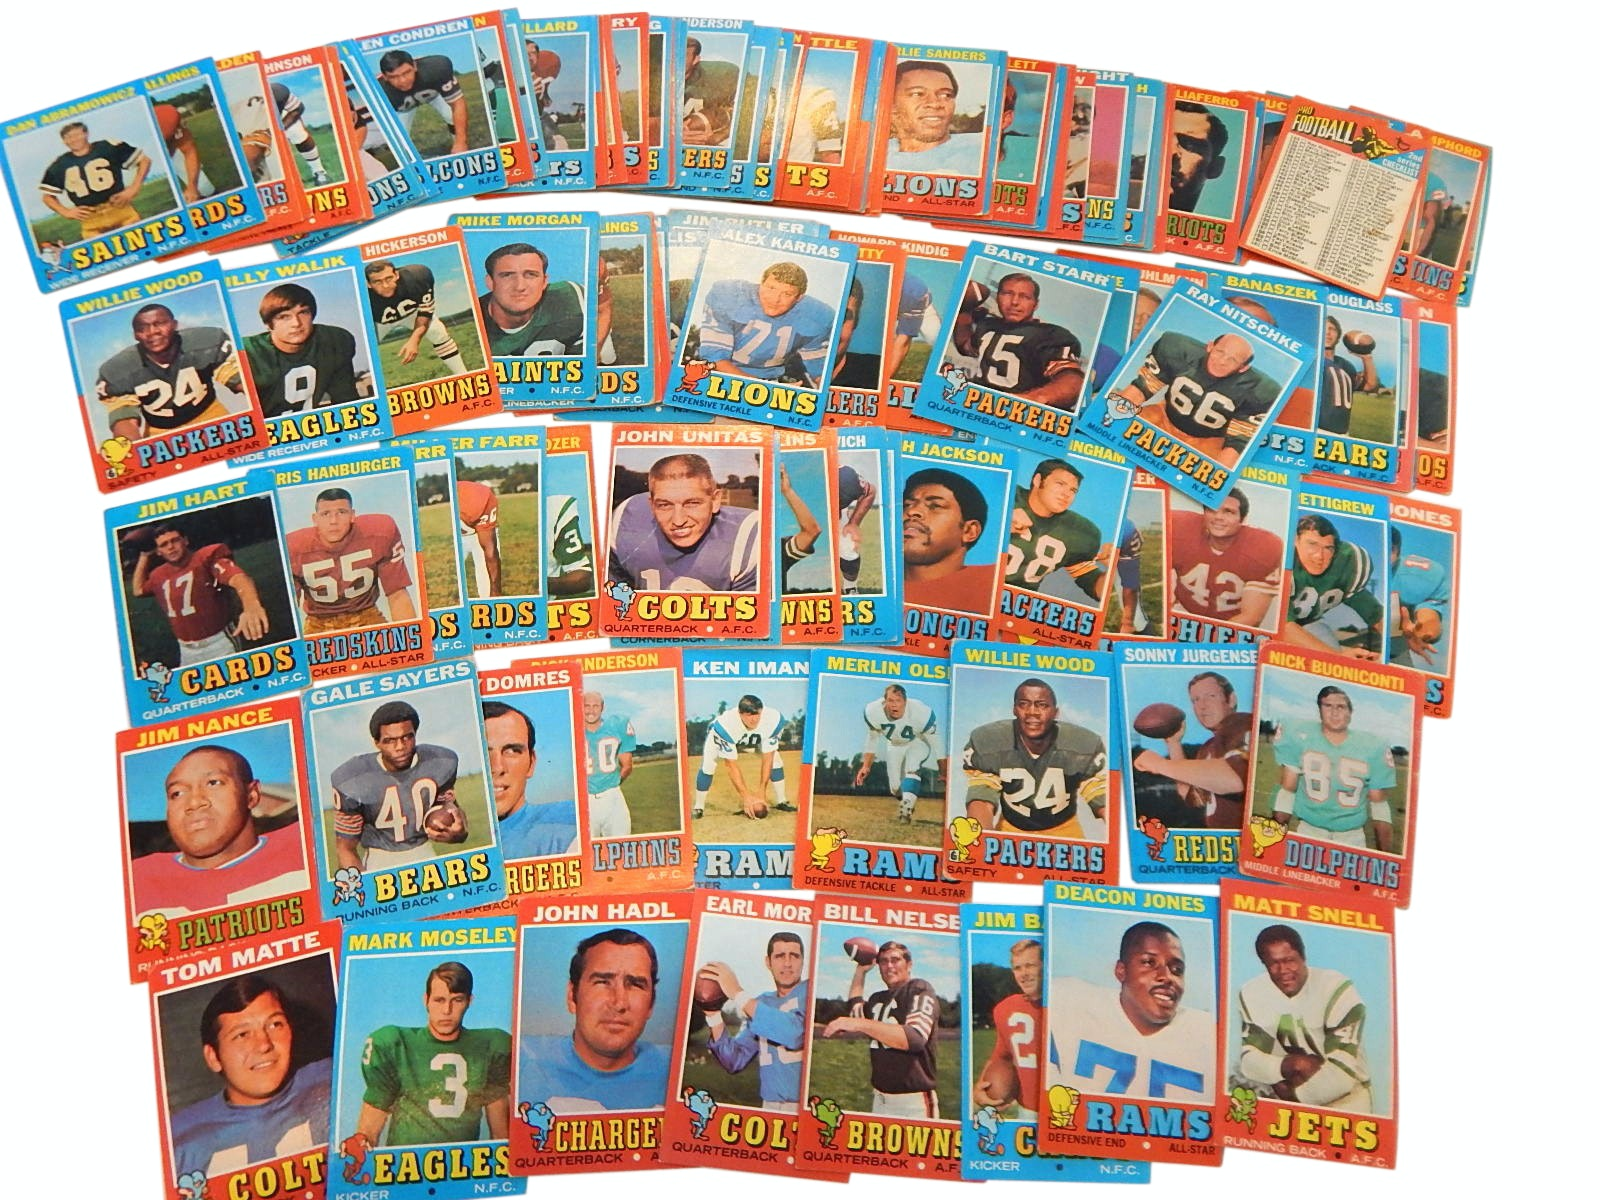 1971 Topps Football Card Collection with Starr, Unitas, Sayers and More